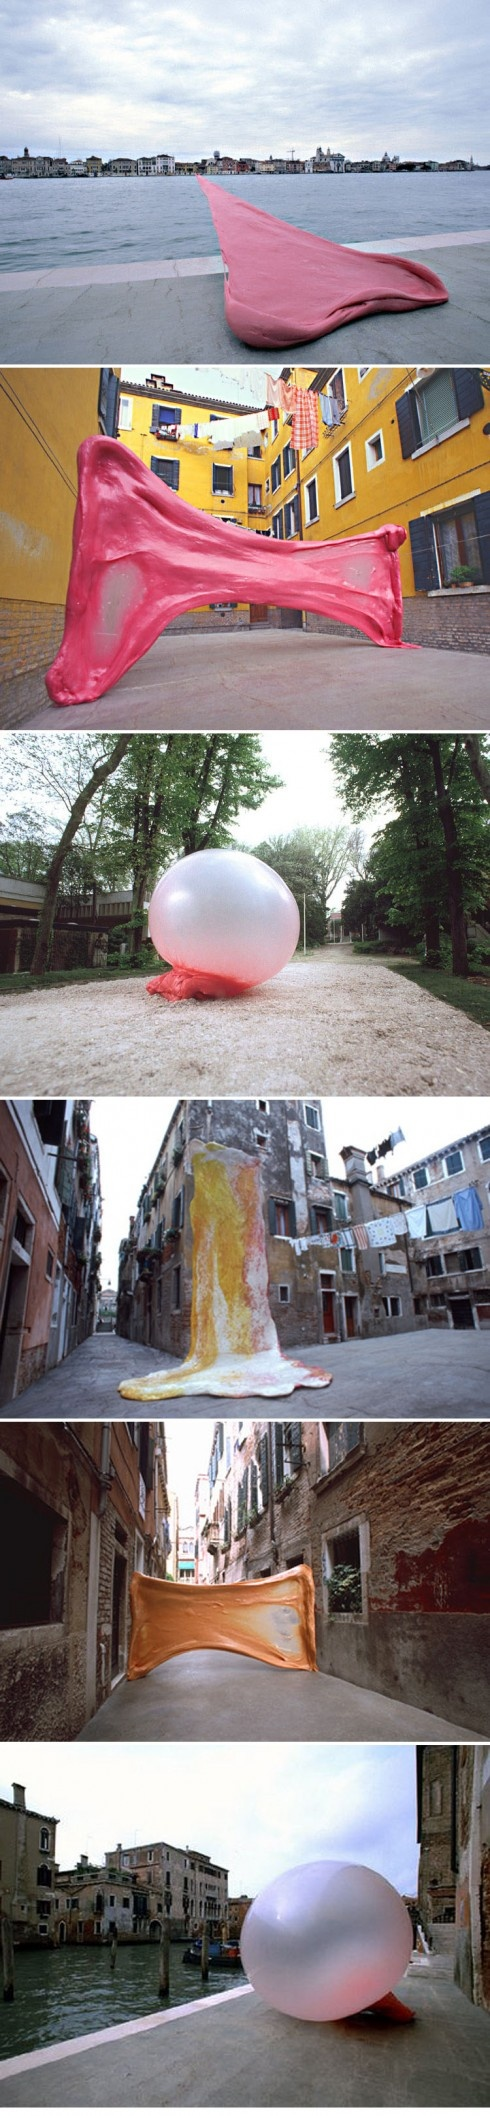 Chewing outdoor installations in Venice: funny and curious. - Simon Decker